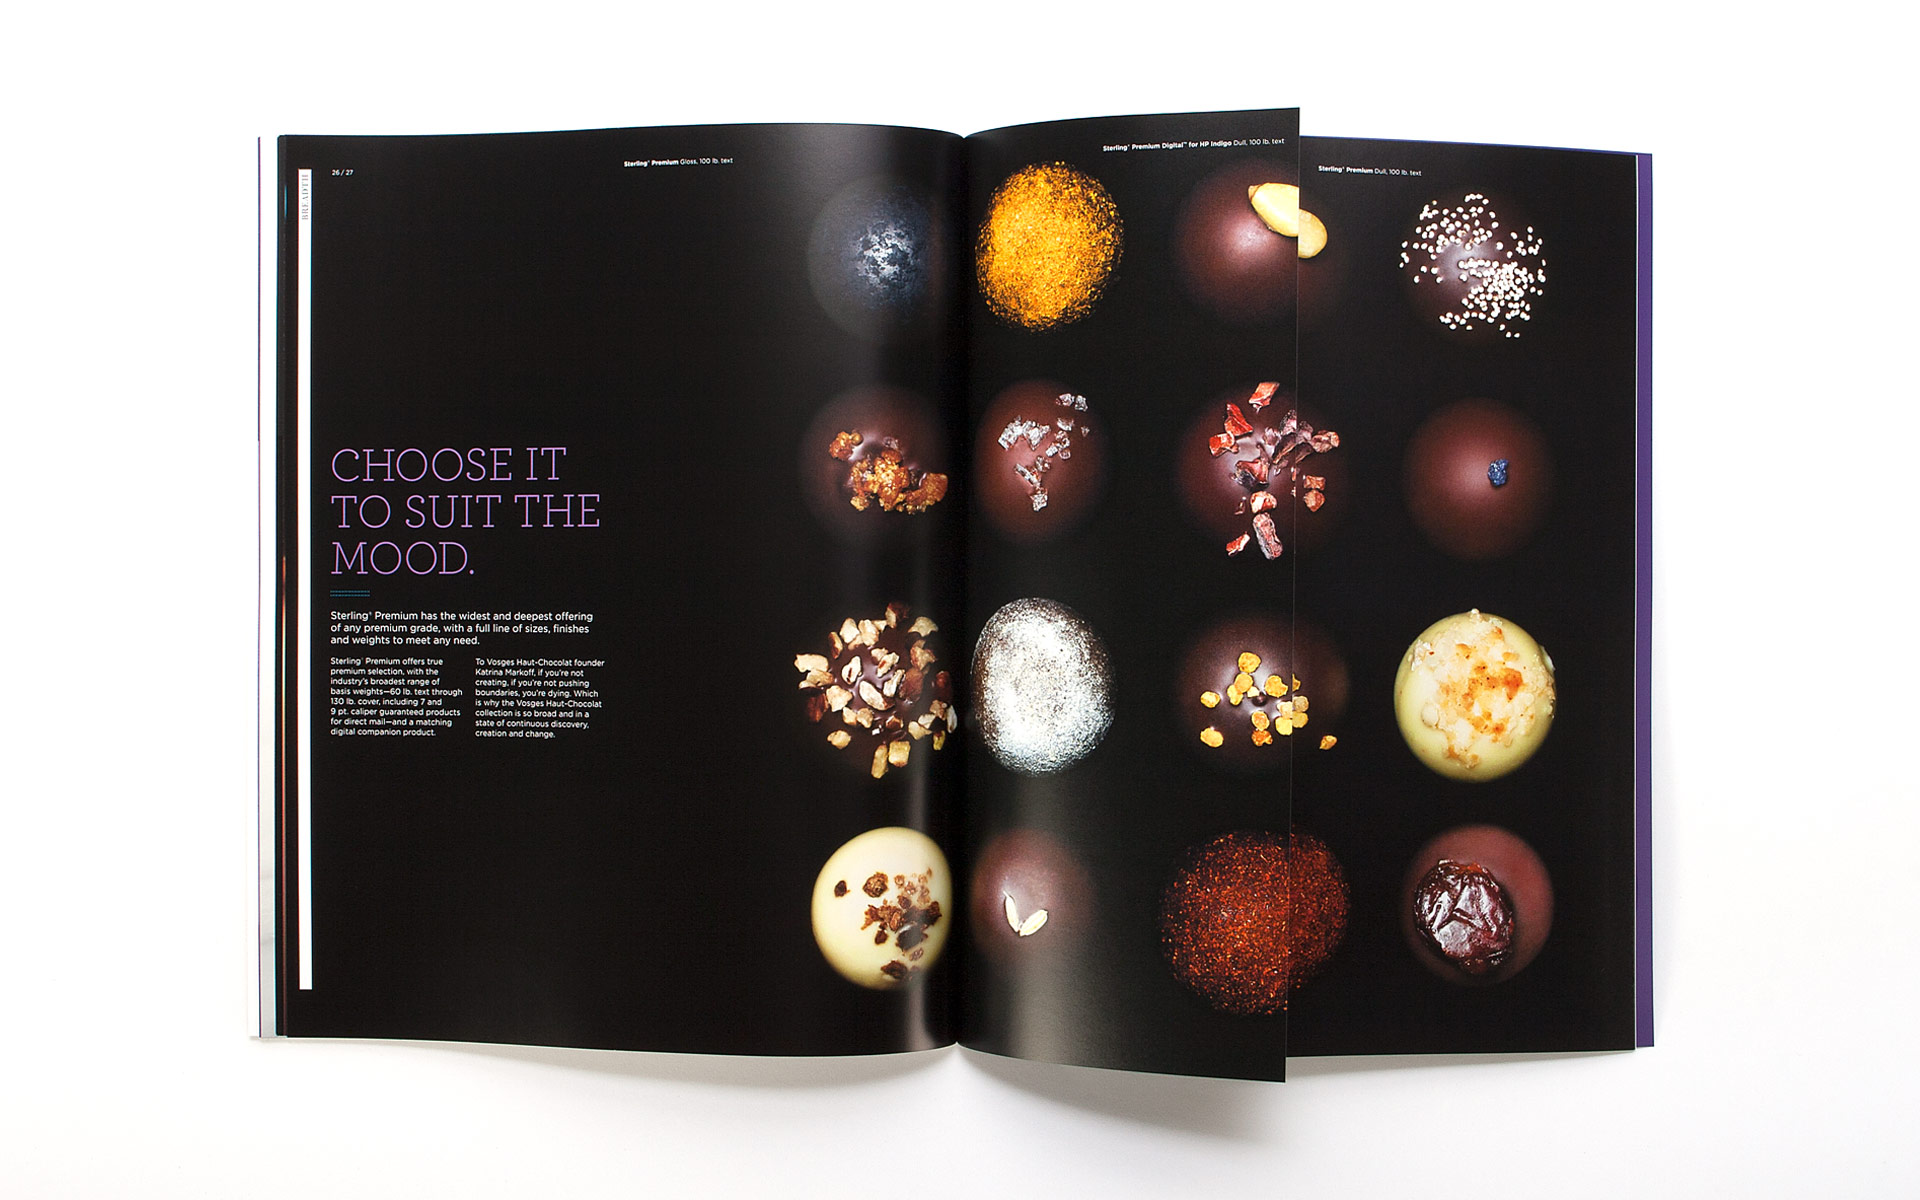 Verso Vosges SP Promotion spread 6